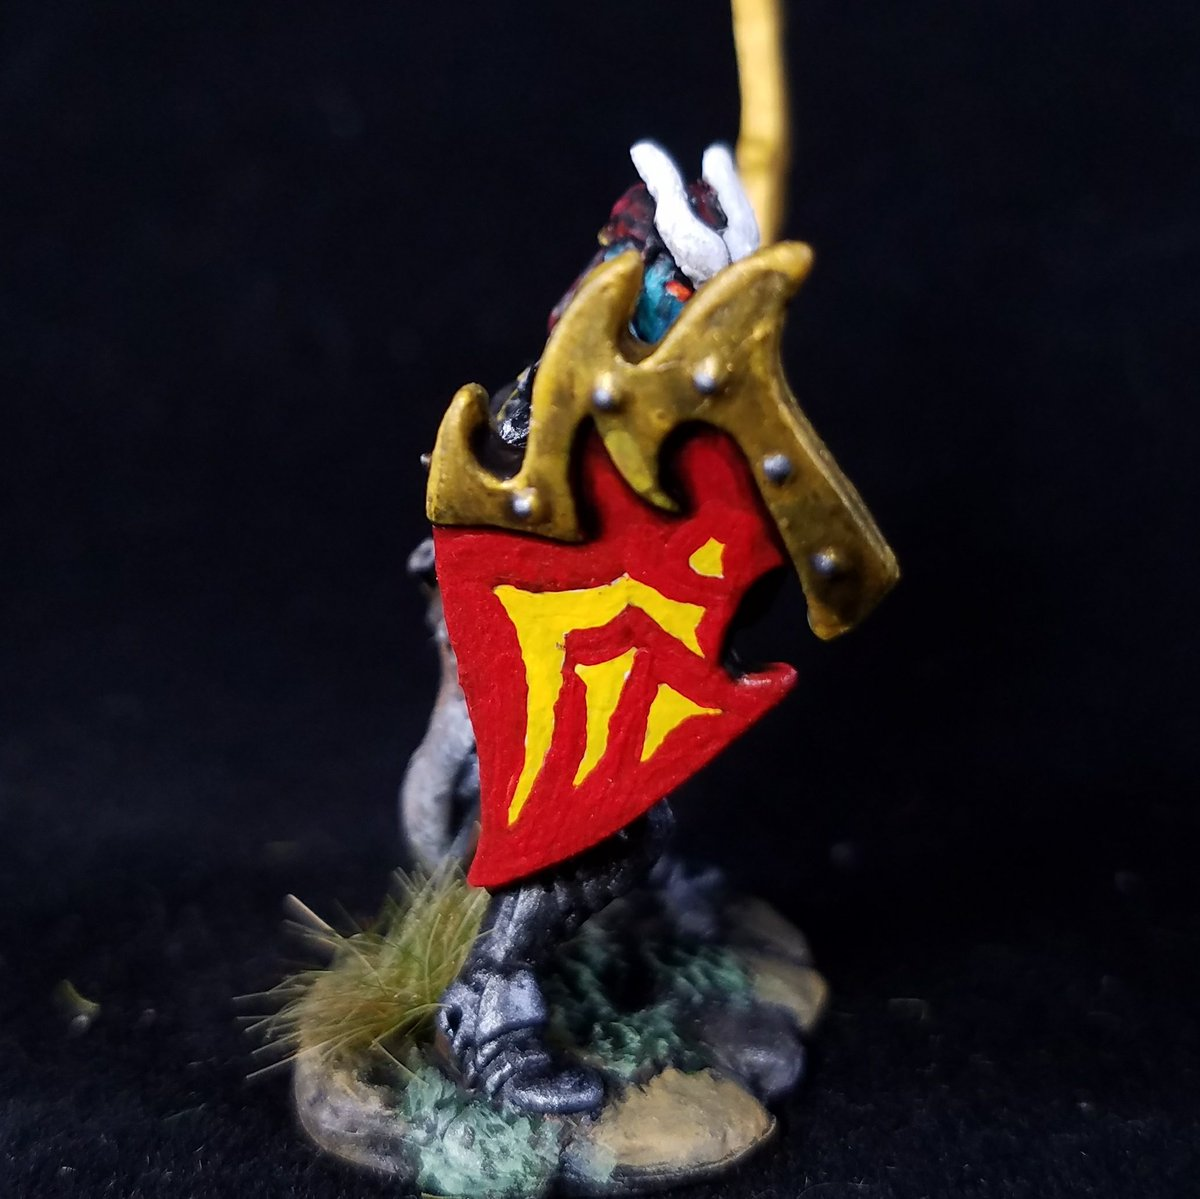 My character minis on twitter freehand symbol on reapermini my character minis on twitter freehand symbol on reapermini 77120 vaeloth hellborn paladin maybe your tiefling character mycharacterminis biocorpaavc Choice Image